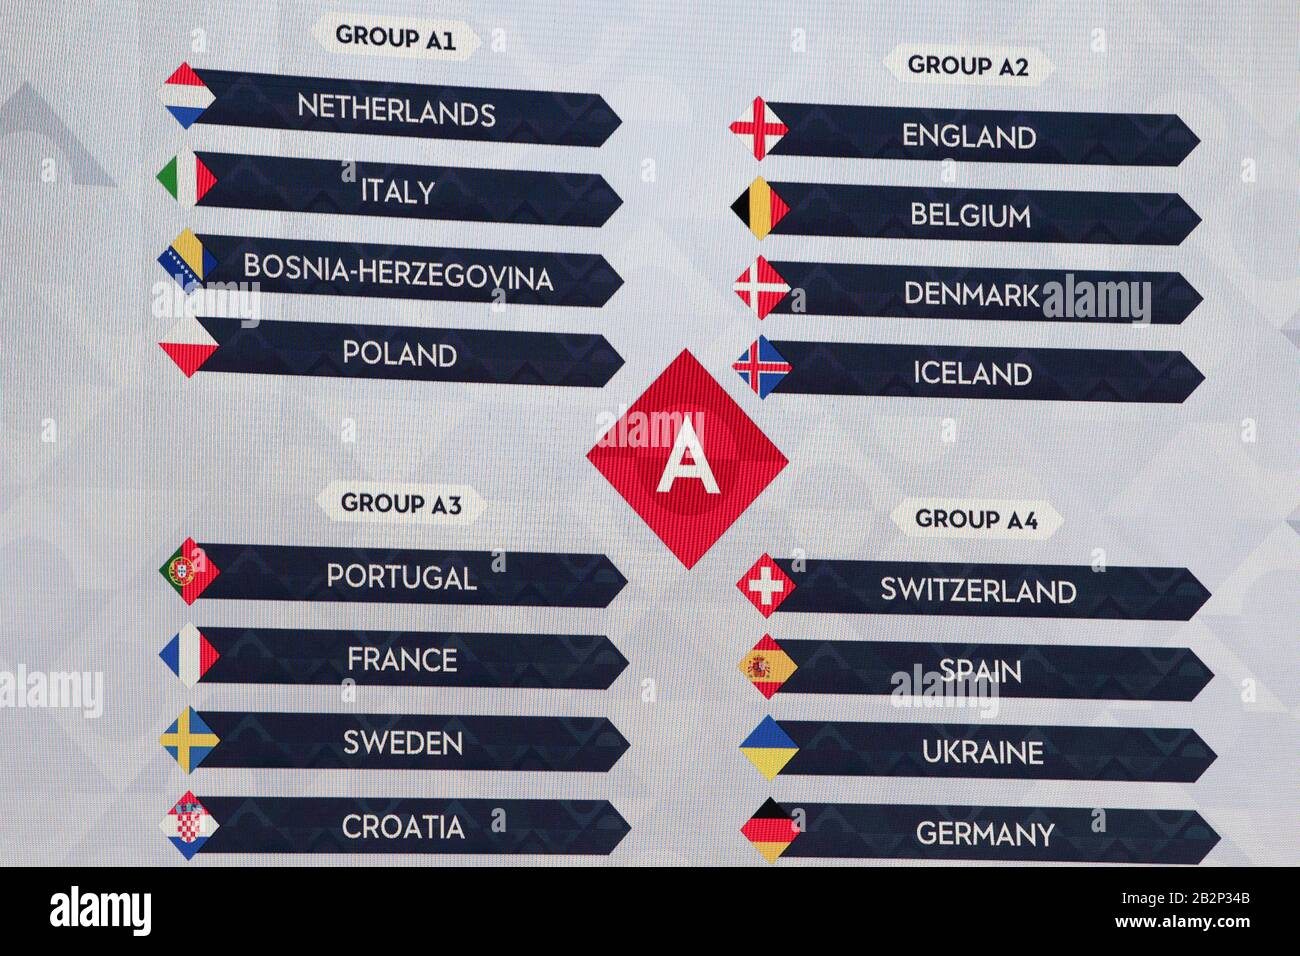 Amsterdam Netherlands 03rd Mar 2020 Football Uefa Nations League Group Draw The Result Of The Draw